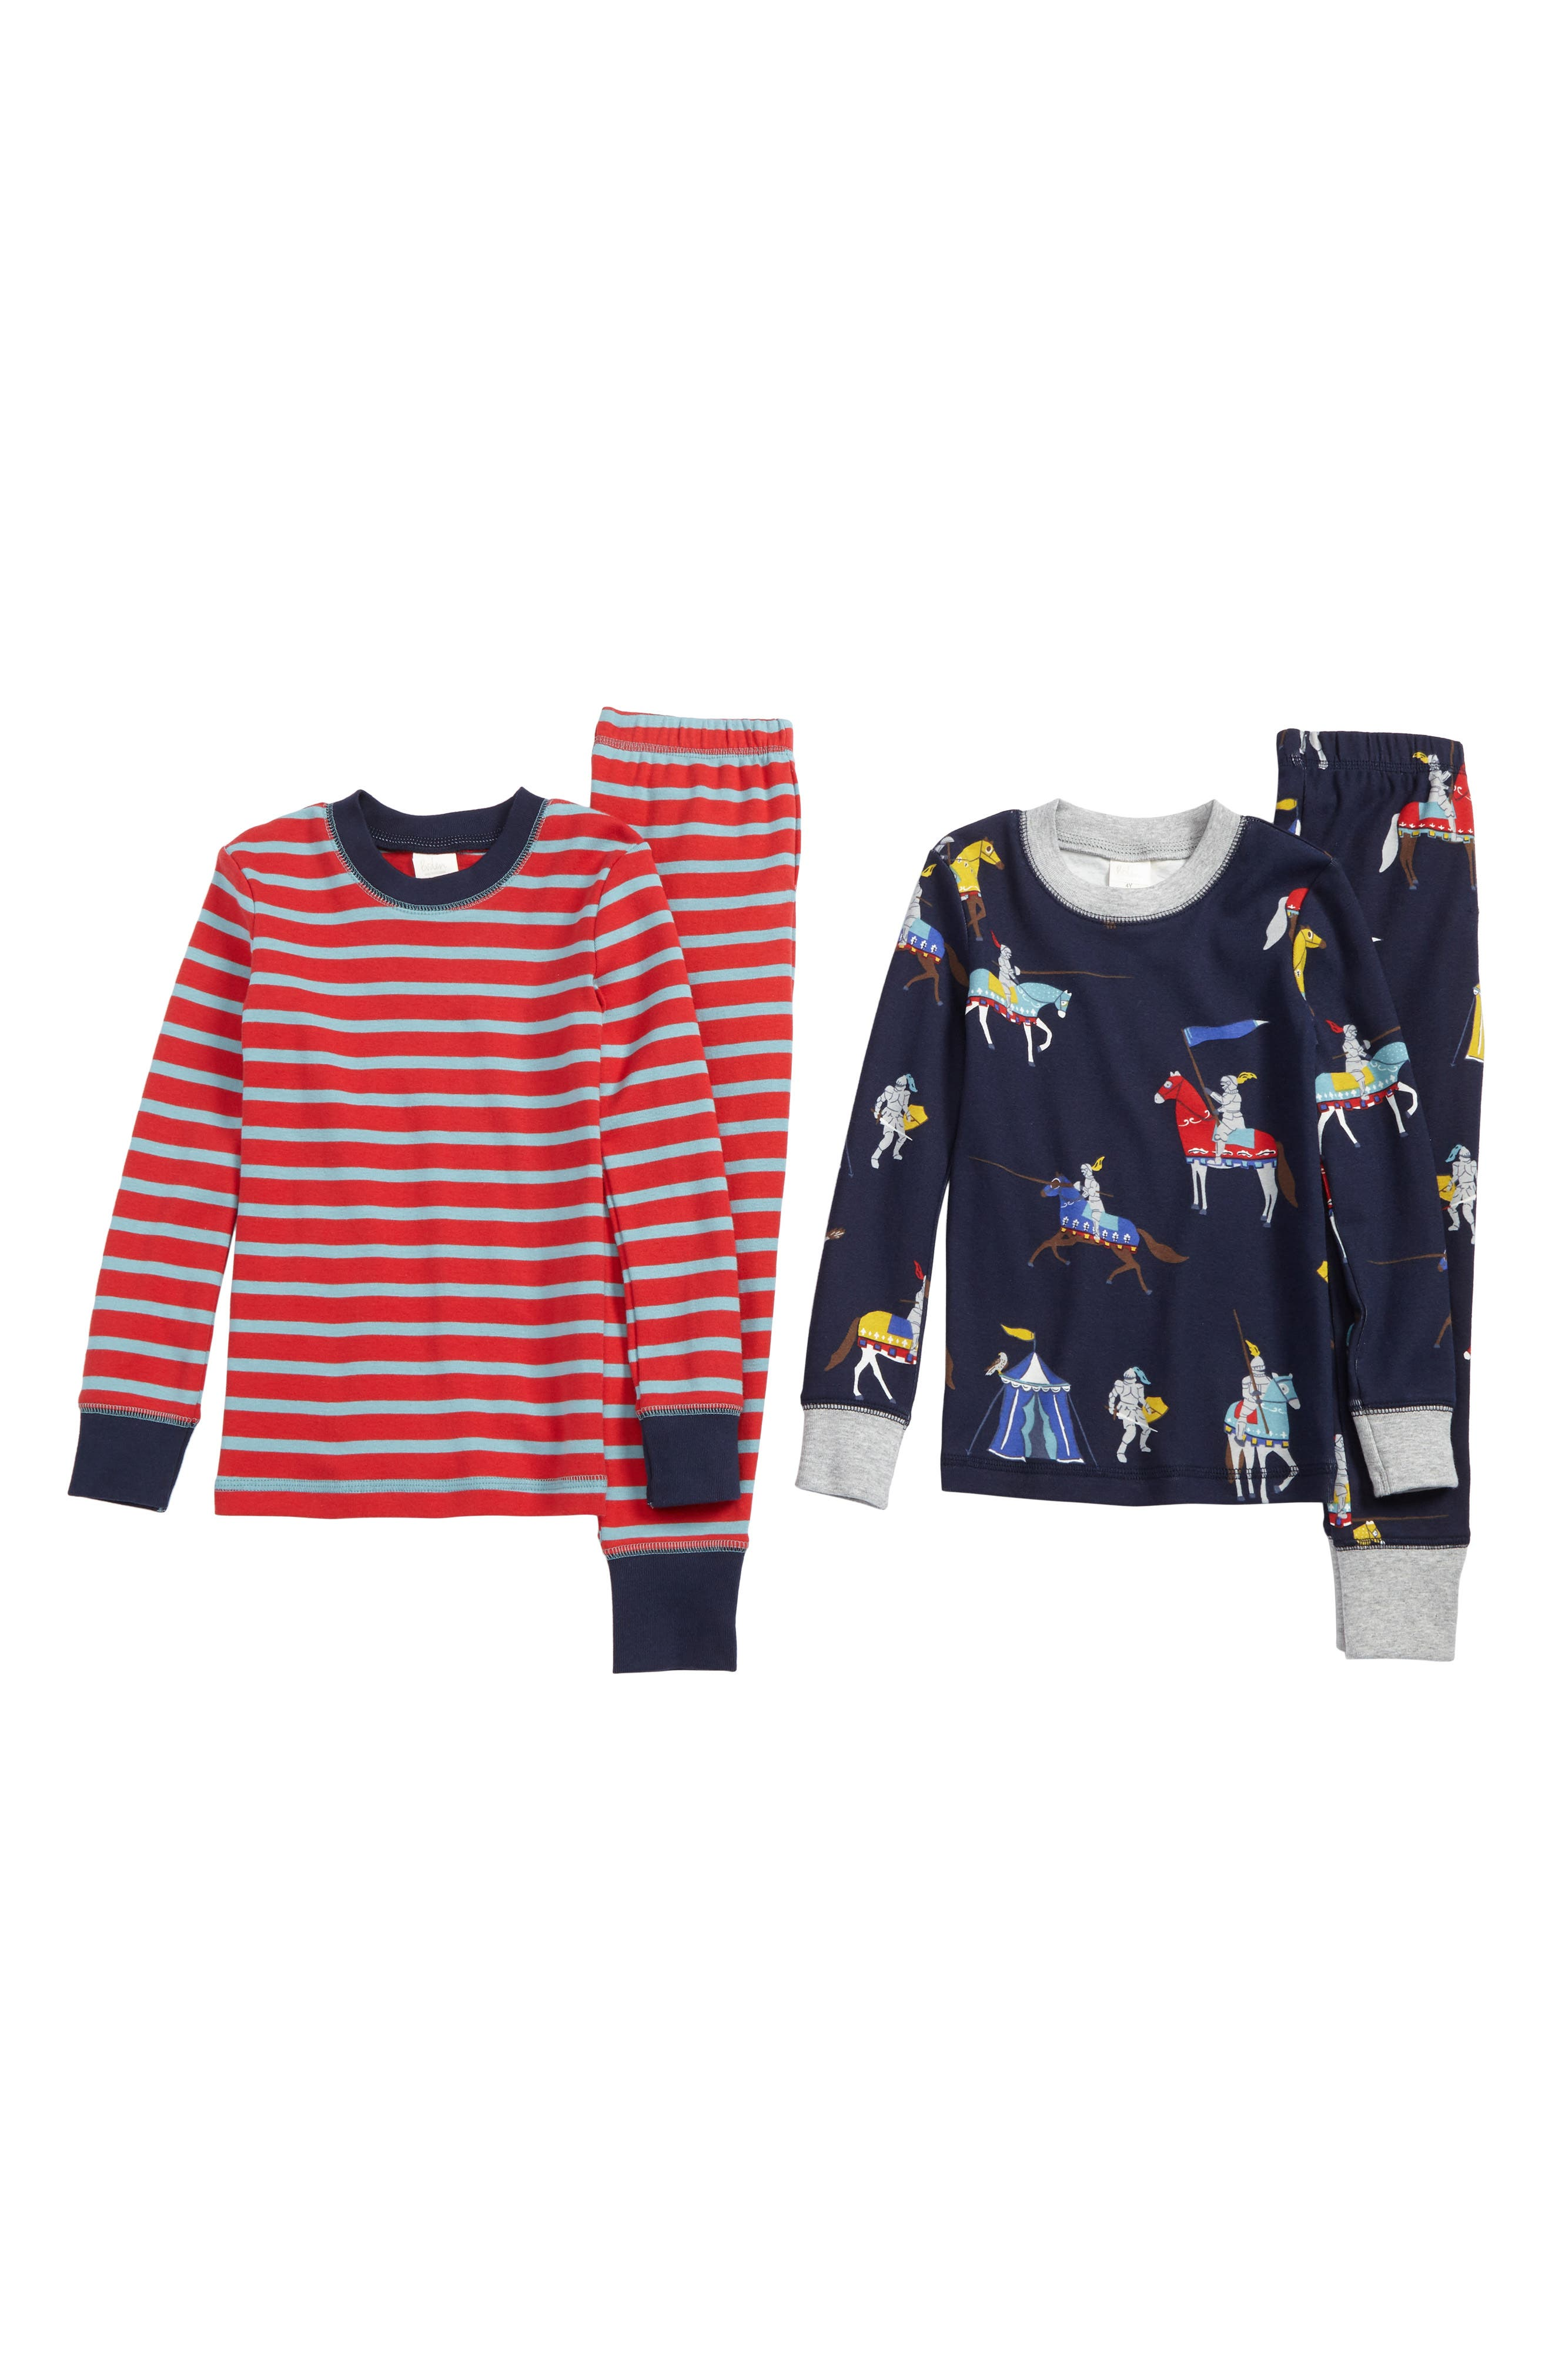 Alternate Image 1 Selected - Mini Boden Cozy 2-Pack Two-Piece Fitted Pajamas (Toddler Boys, Little Boys & Big Boys)